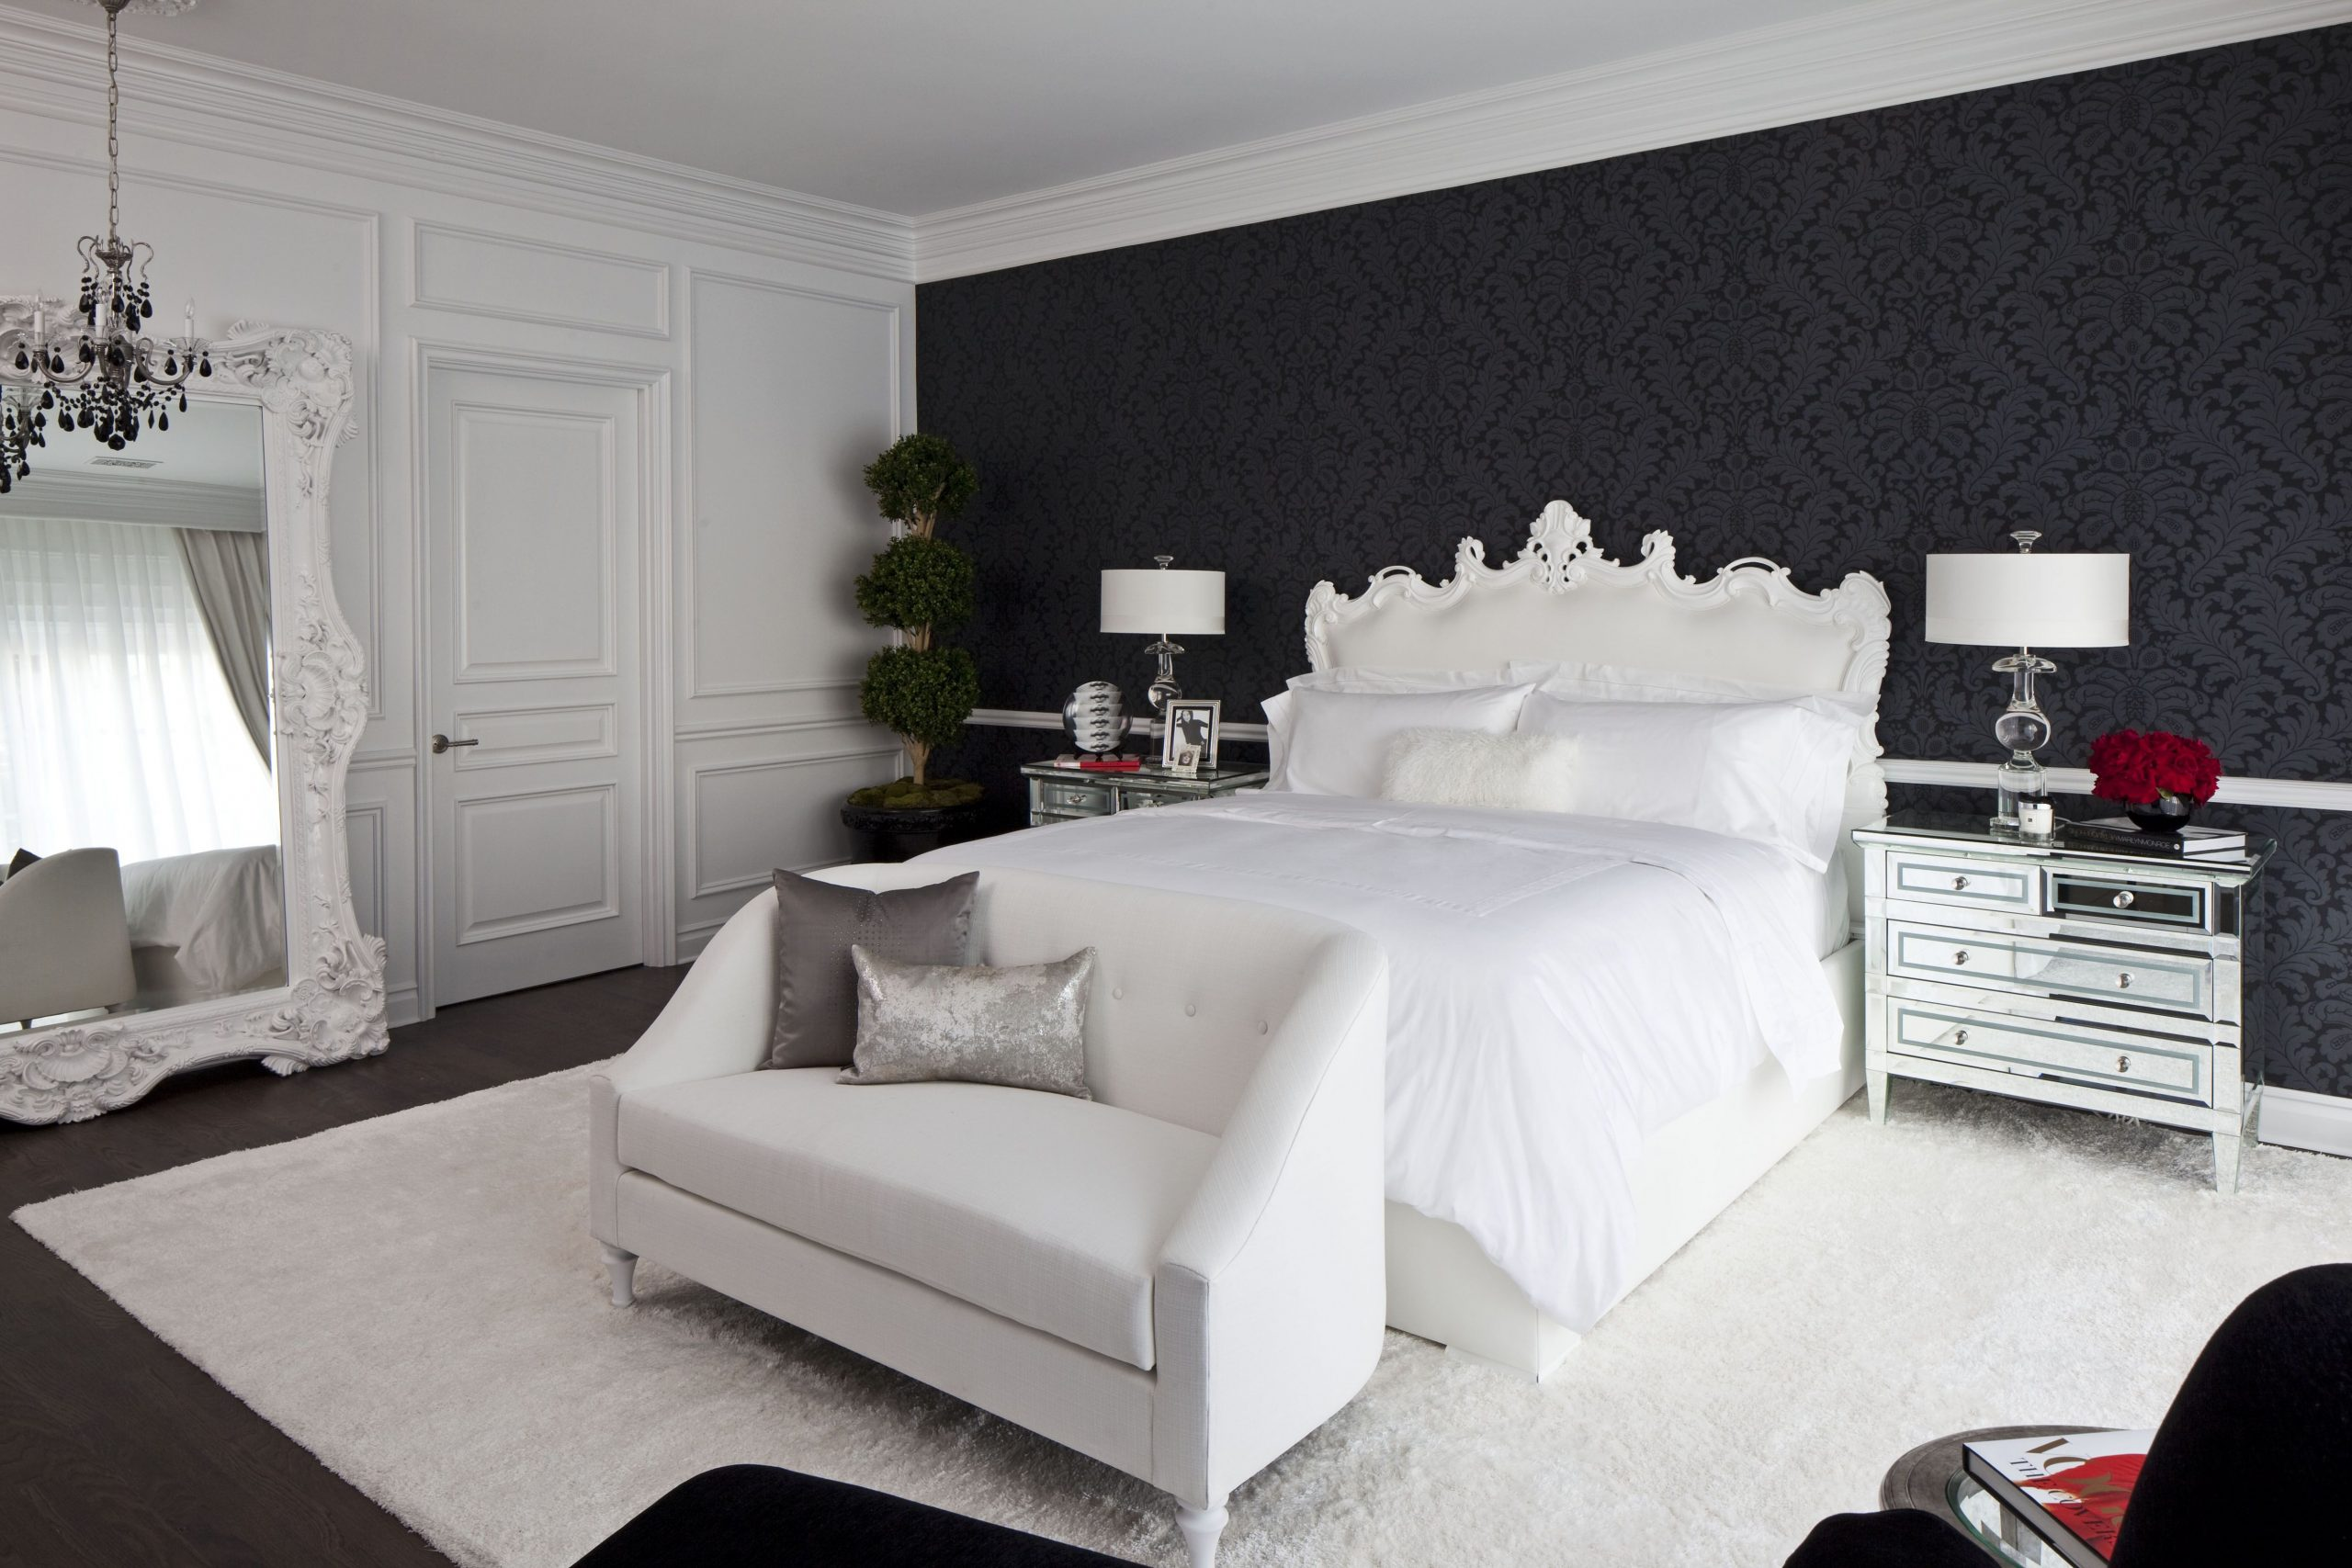 12 Black & White Bedrooms - Photos and Ideas for Bedrooms with  - Bedroom Ideas Black And White